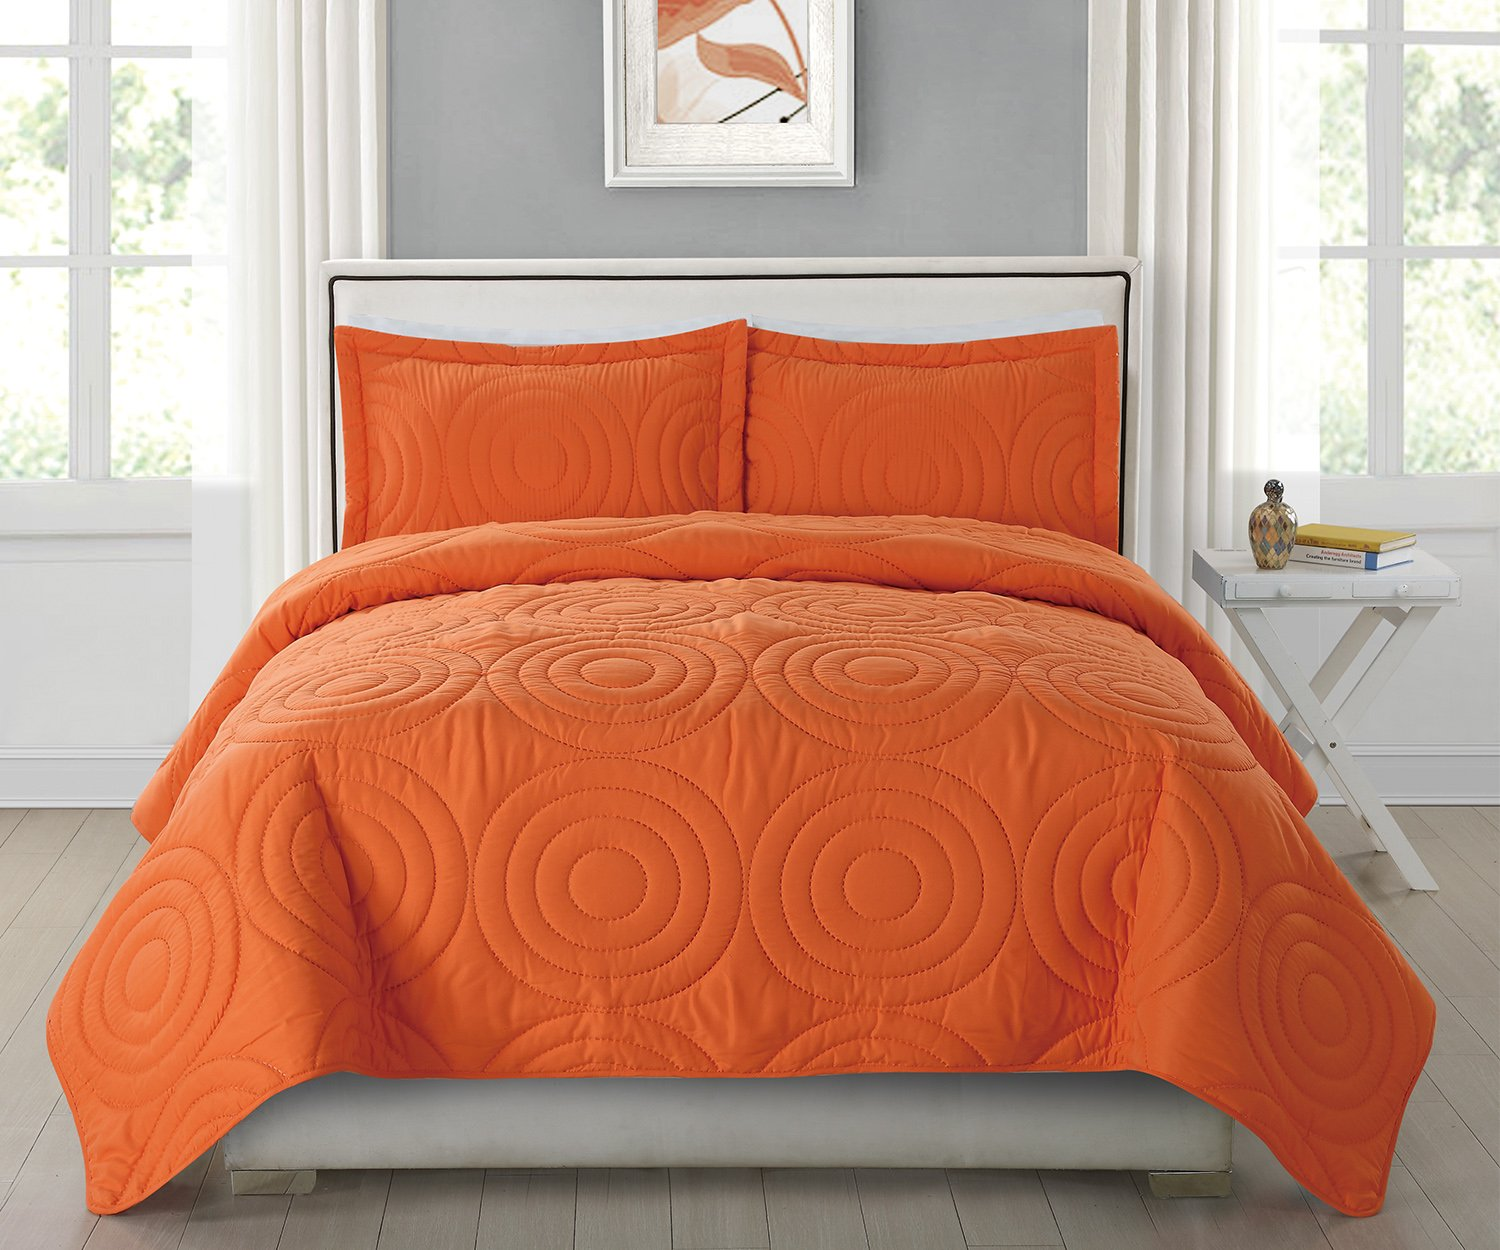 Bedding Quilt Set with 2 Pillowcases, Orange, Queen